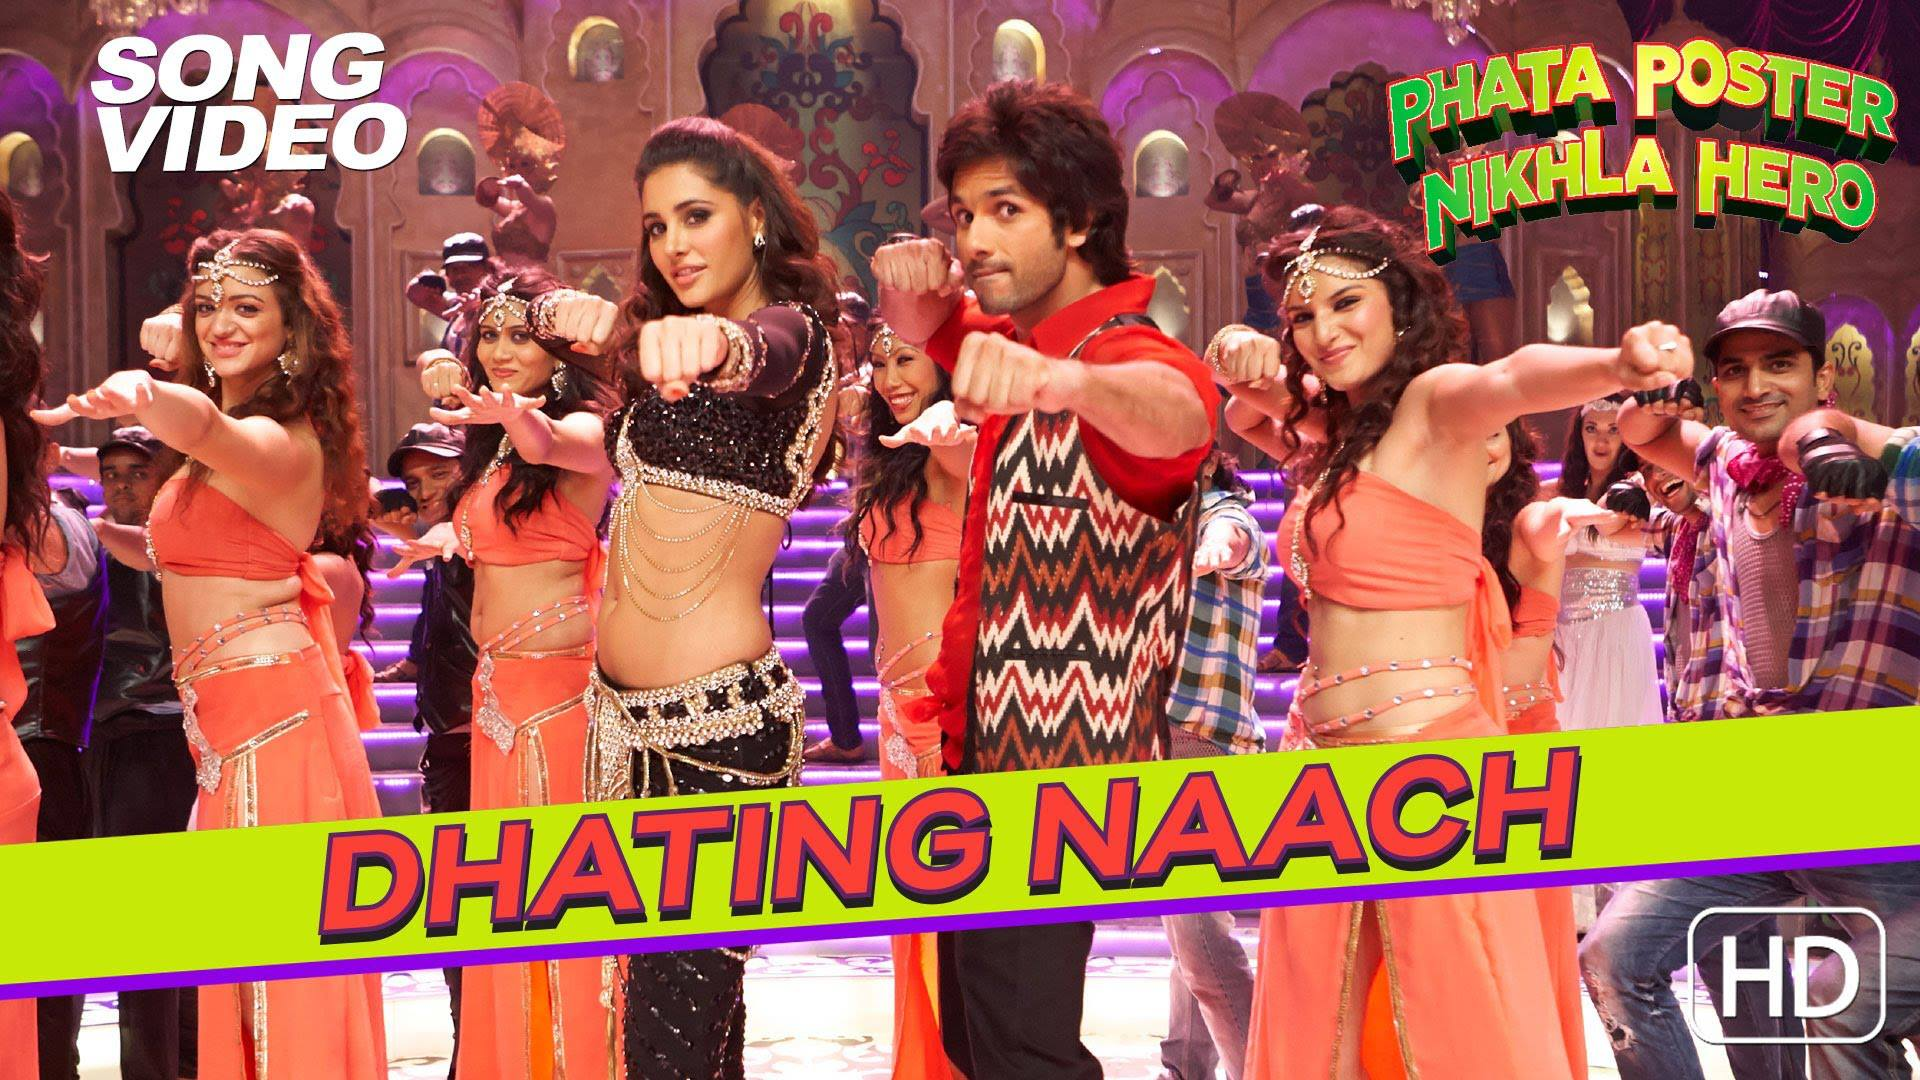 Dhating Naach Songs Pk Mp3 Free Download